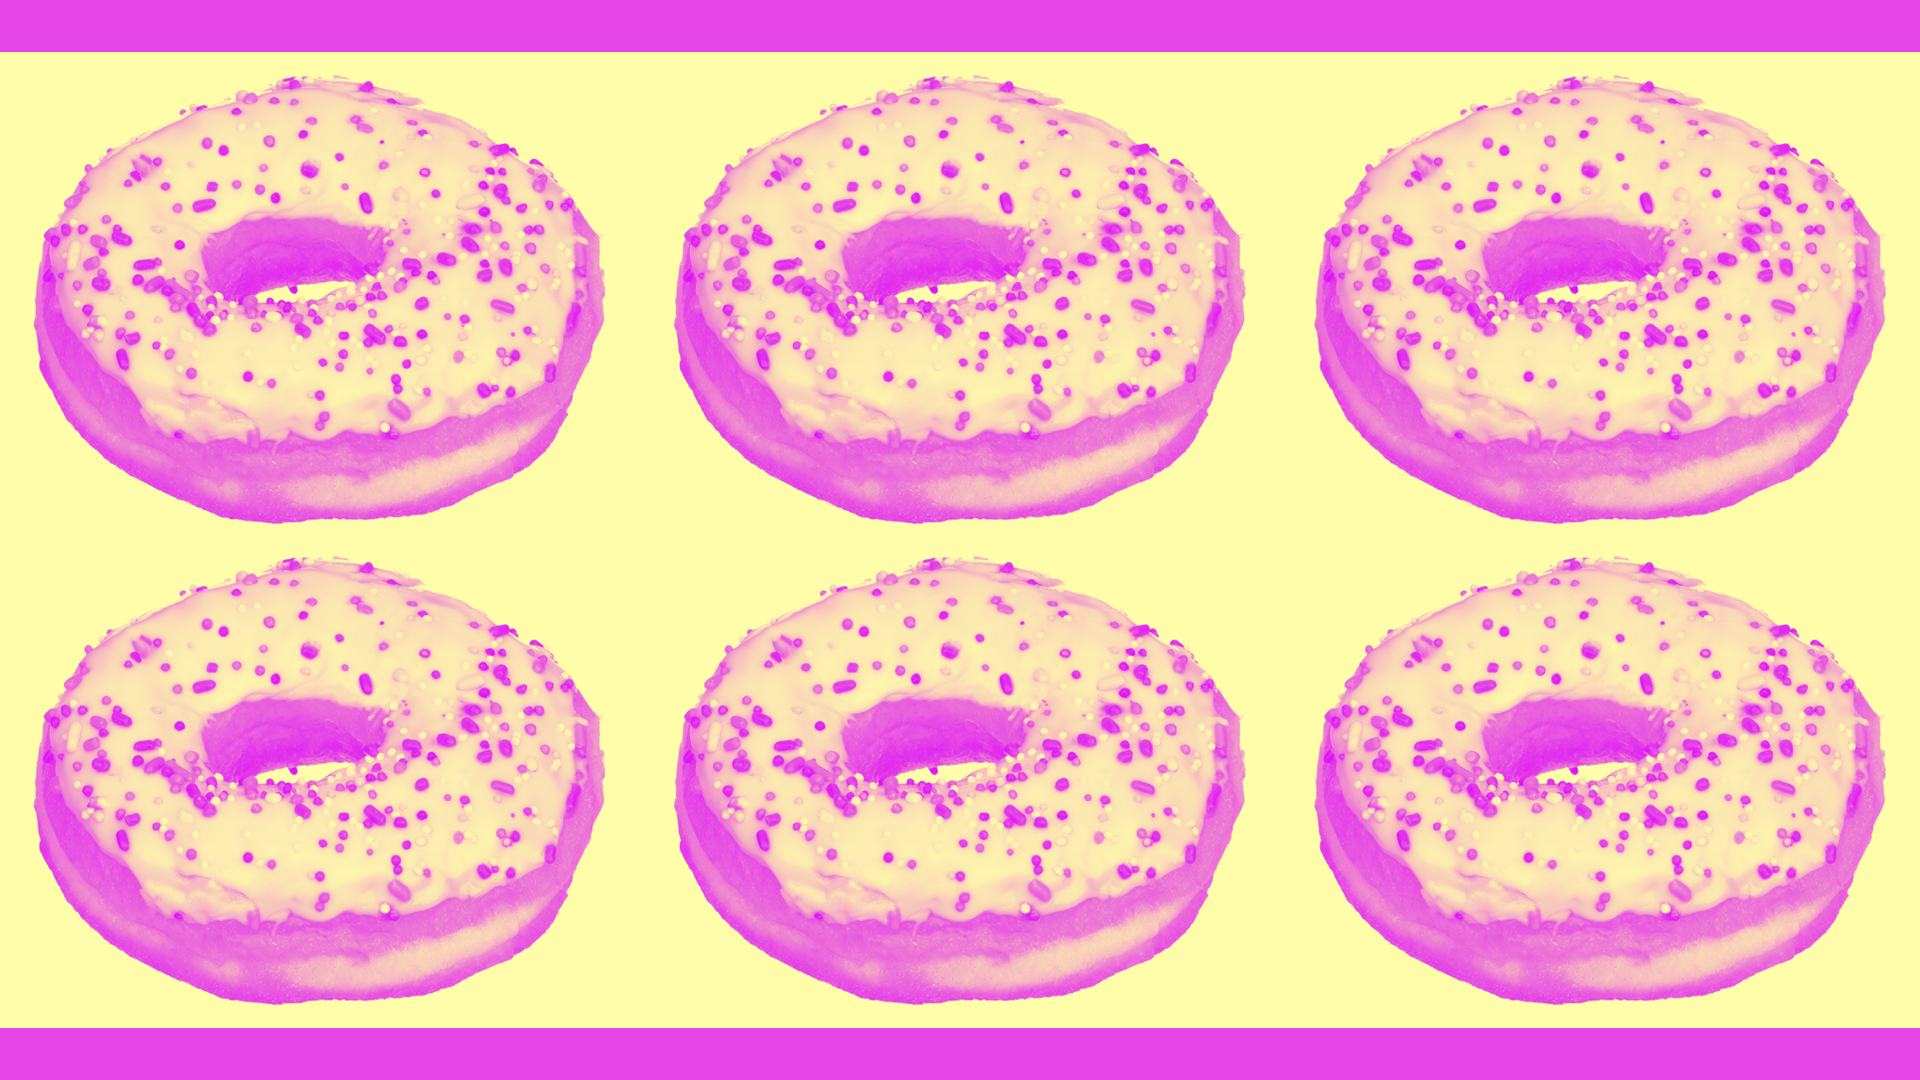 Sensational Neon Donut Desktop Wallpaper Freckle Fair Recipes Diy Download Free Architecture Designs Intelgarnamadebymaigaardcom